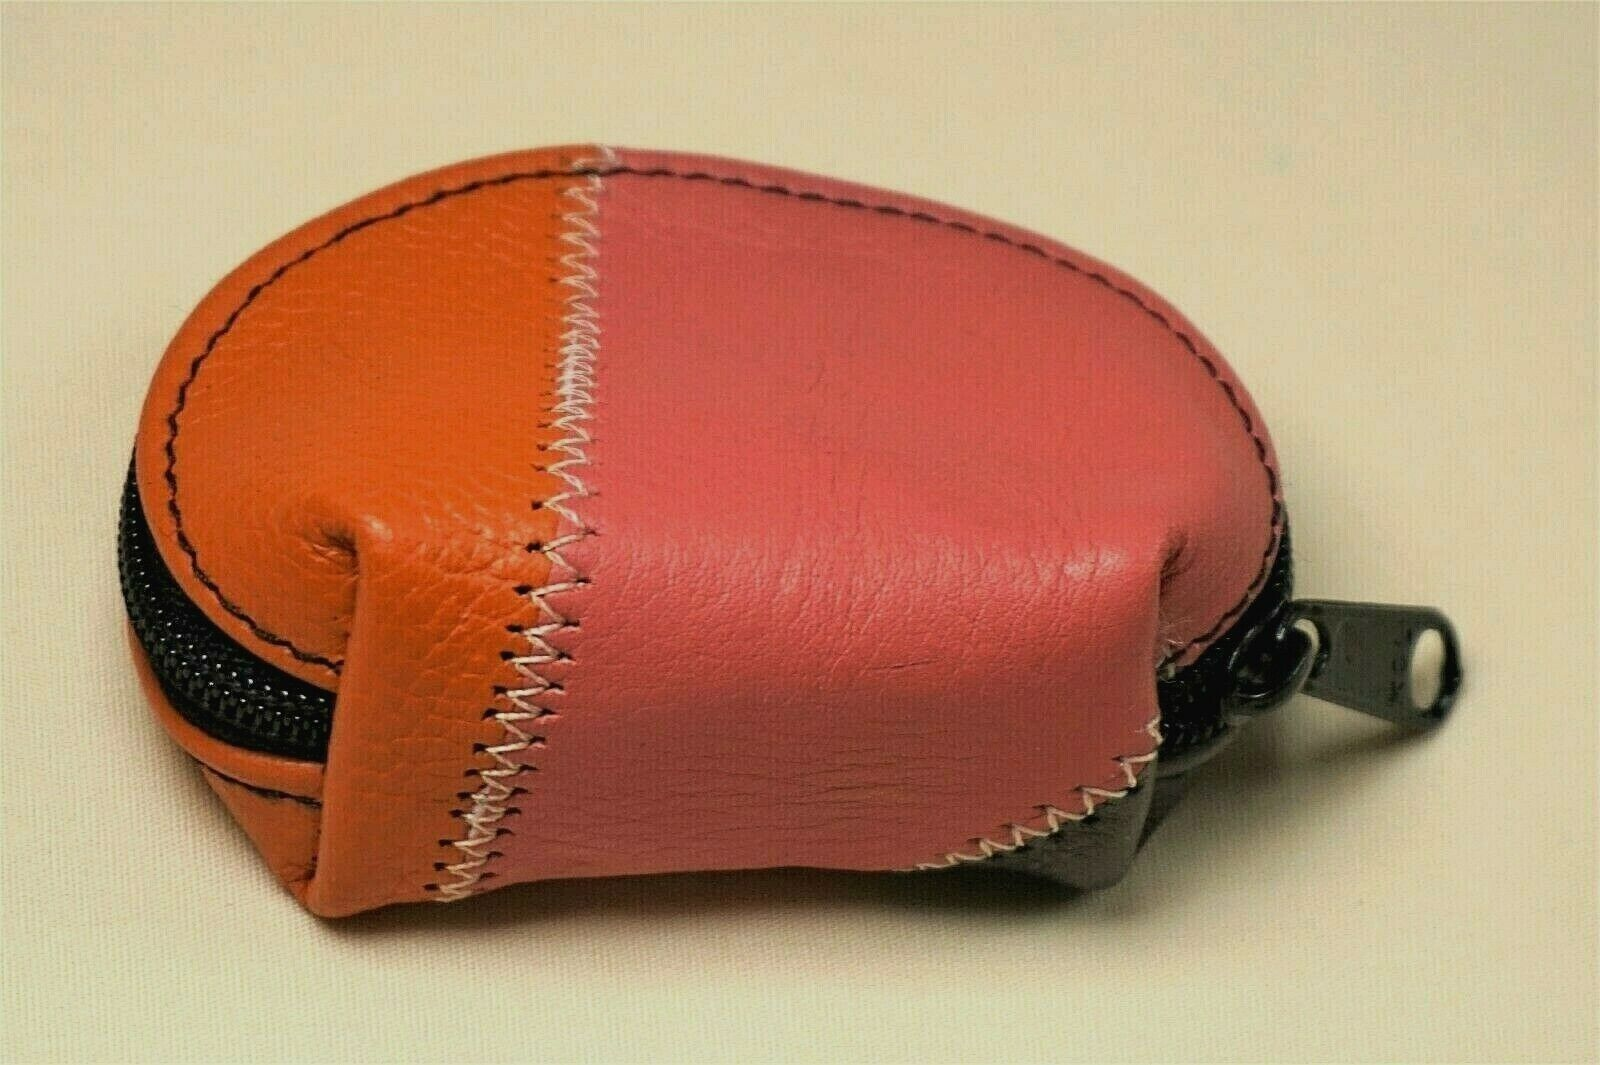 New Leather Sheepskin Handmade Color Mini Zipper Coin Patchwork Pouch Purse 3x2